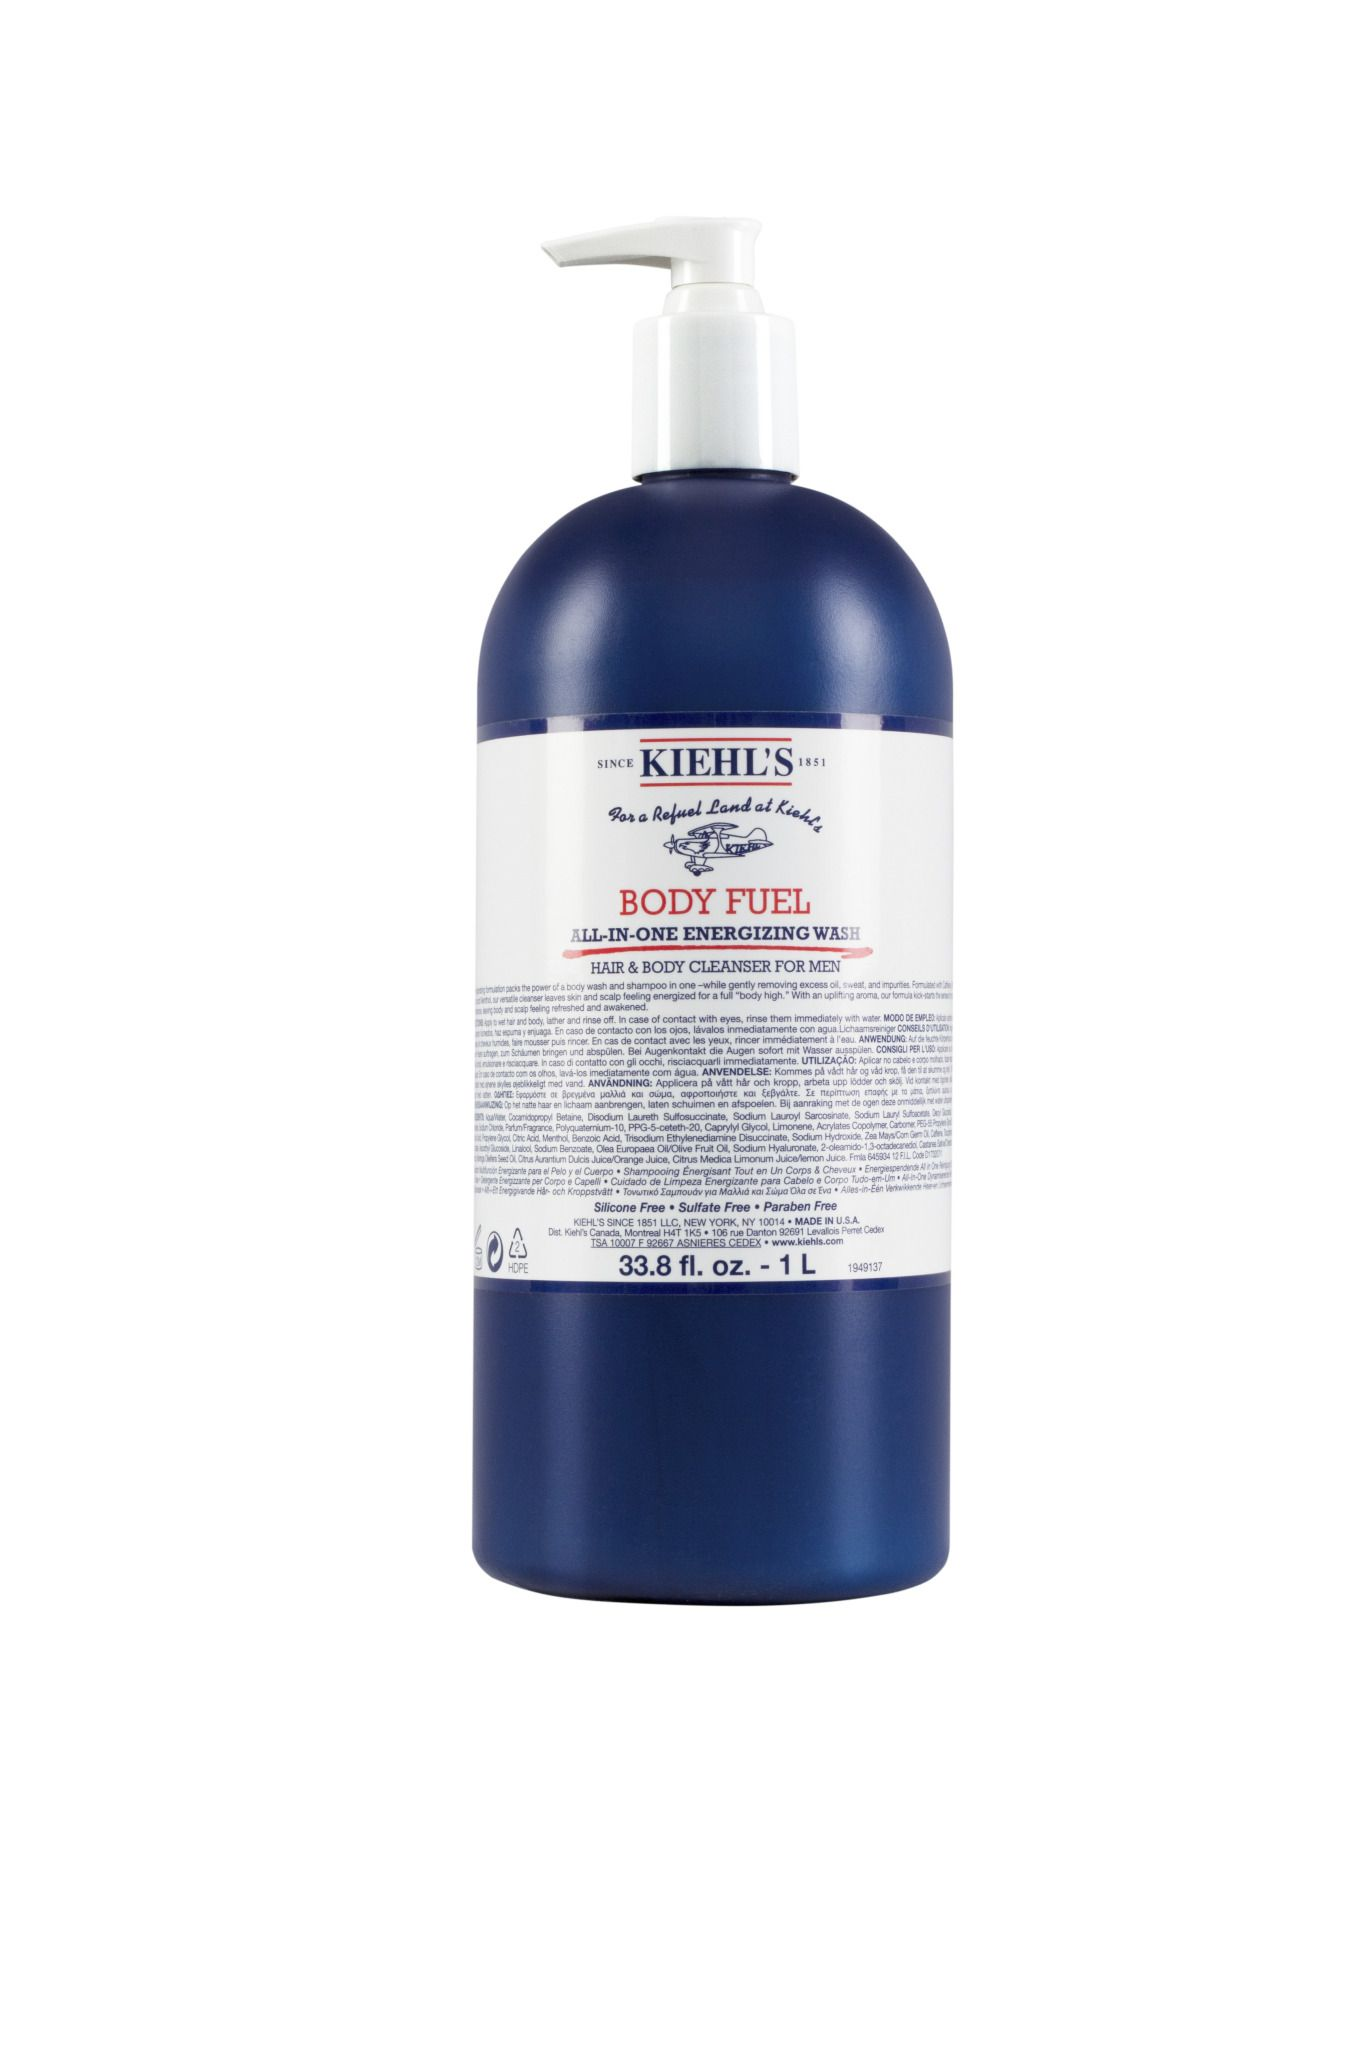 Kiehls Body Fuel 1L